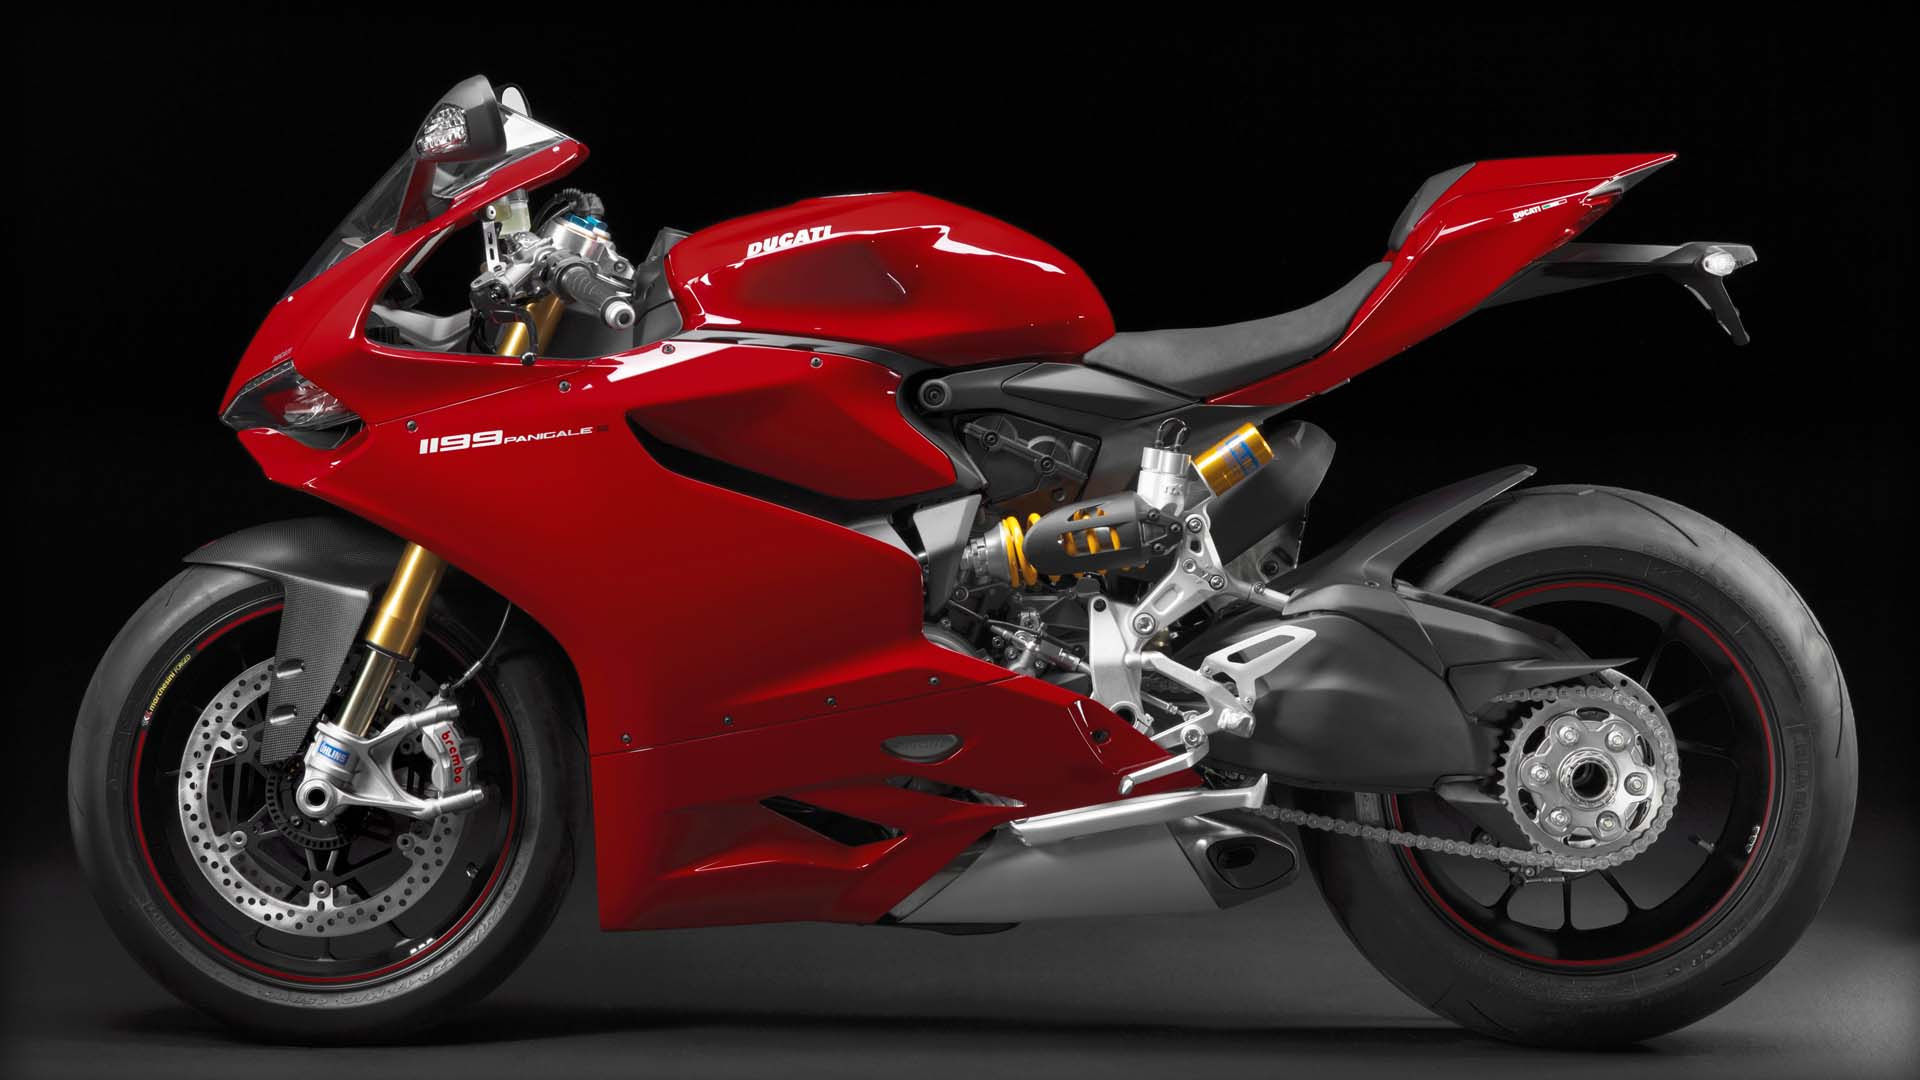 2014 Ducati 1199 PANIGALE S | Ducati 1199 Panigale S - Red Model Left Side